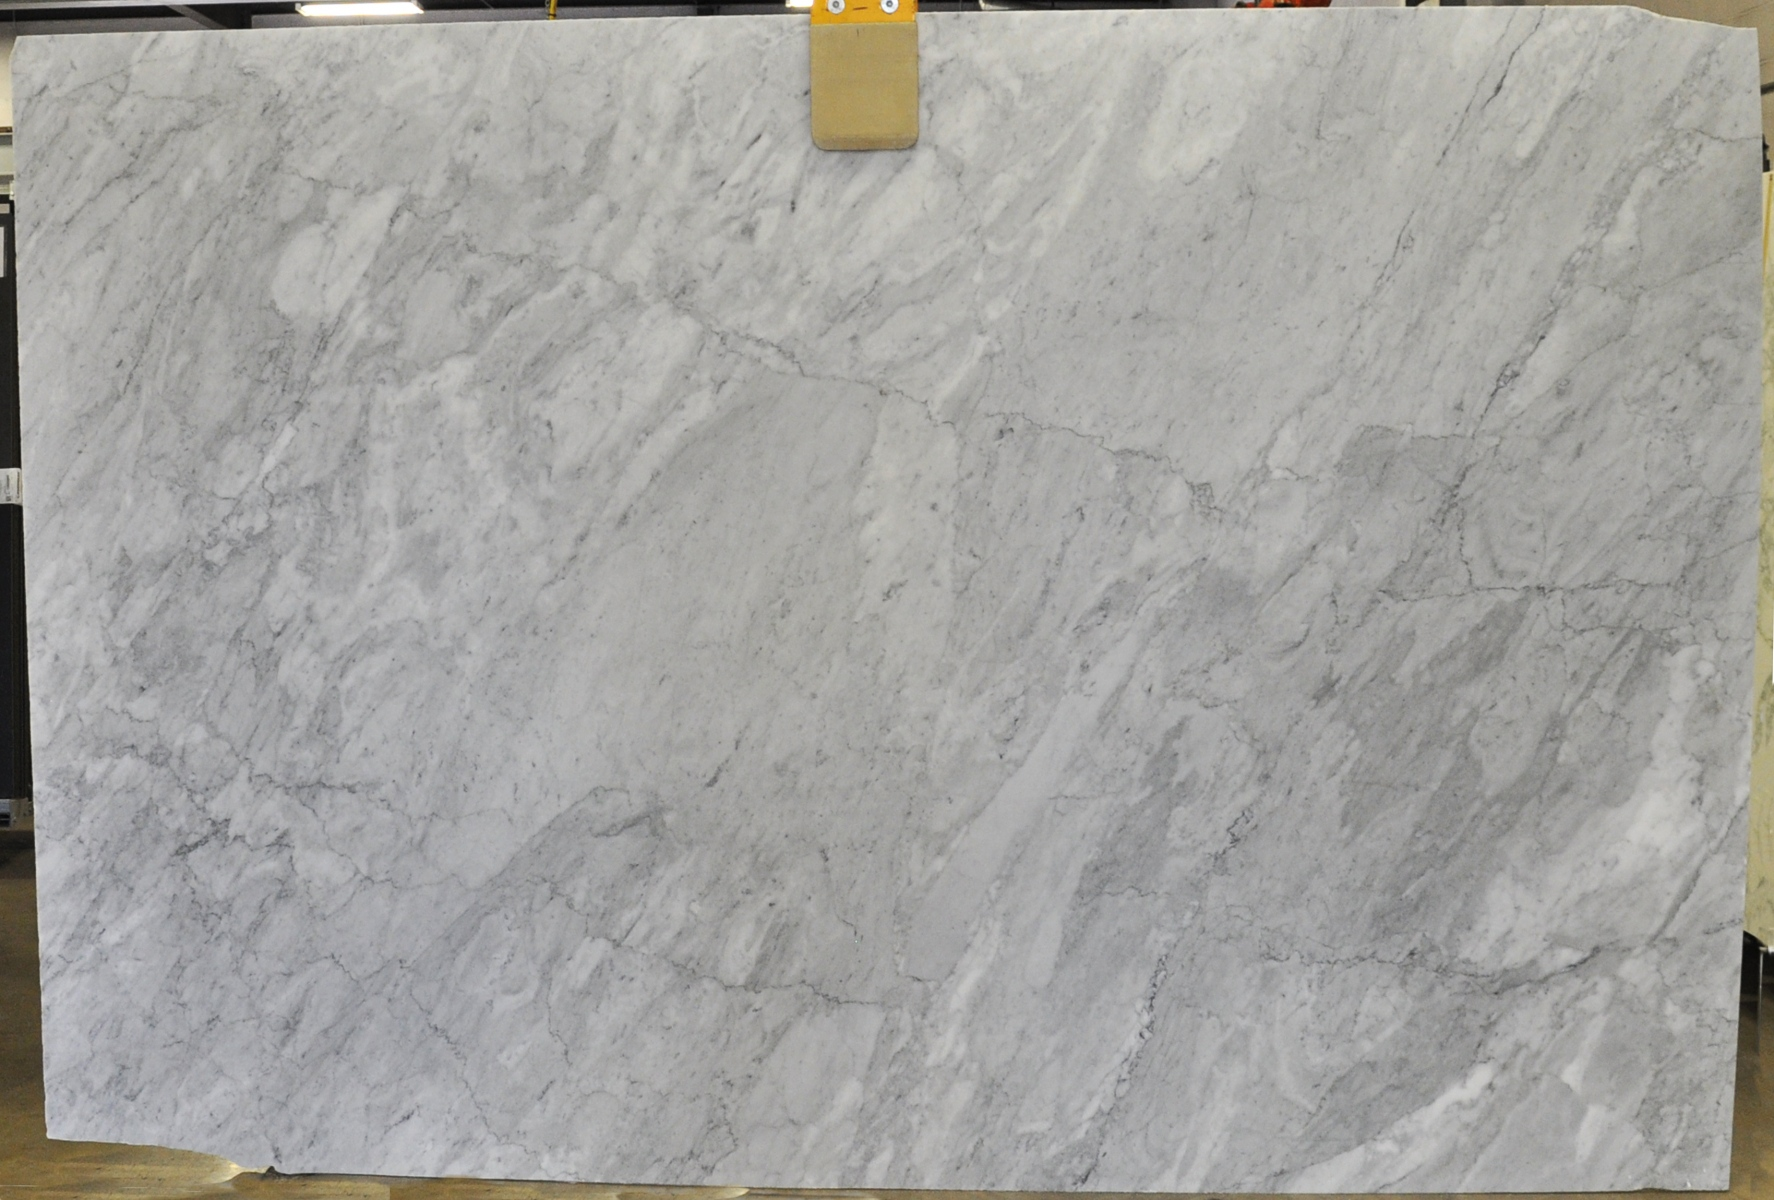 Petra Di Carrara 2 cm lot (1)